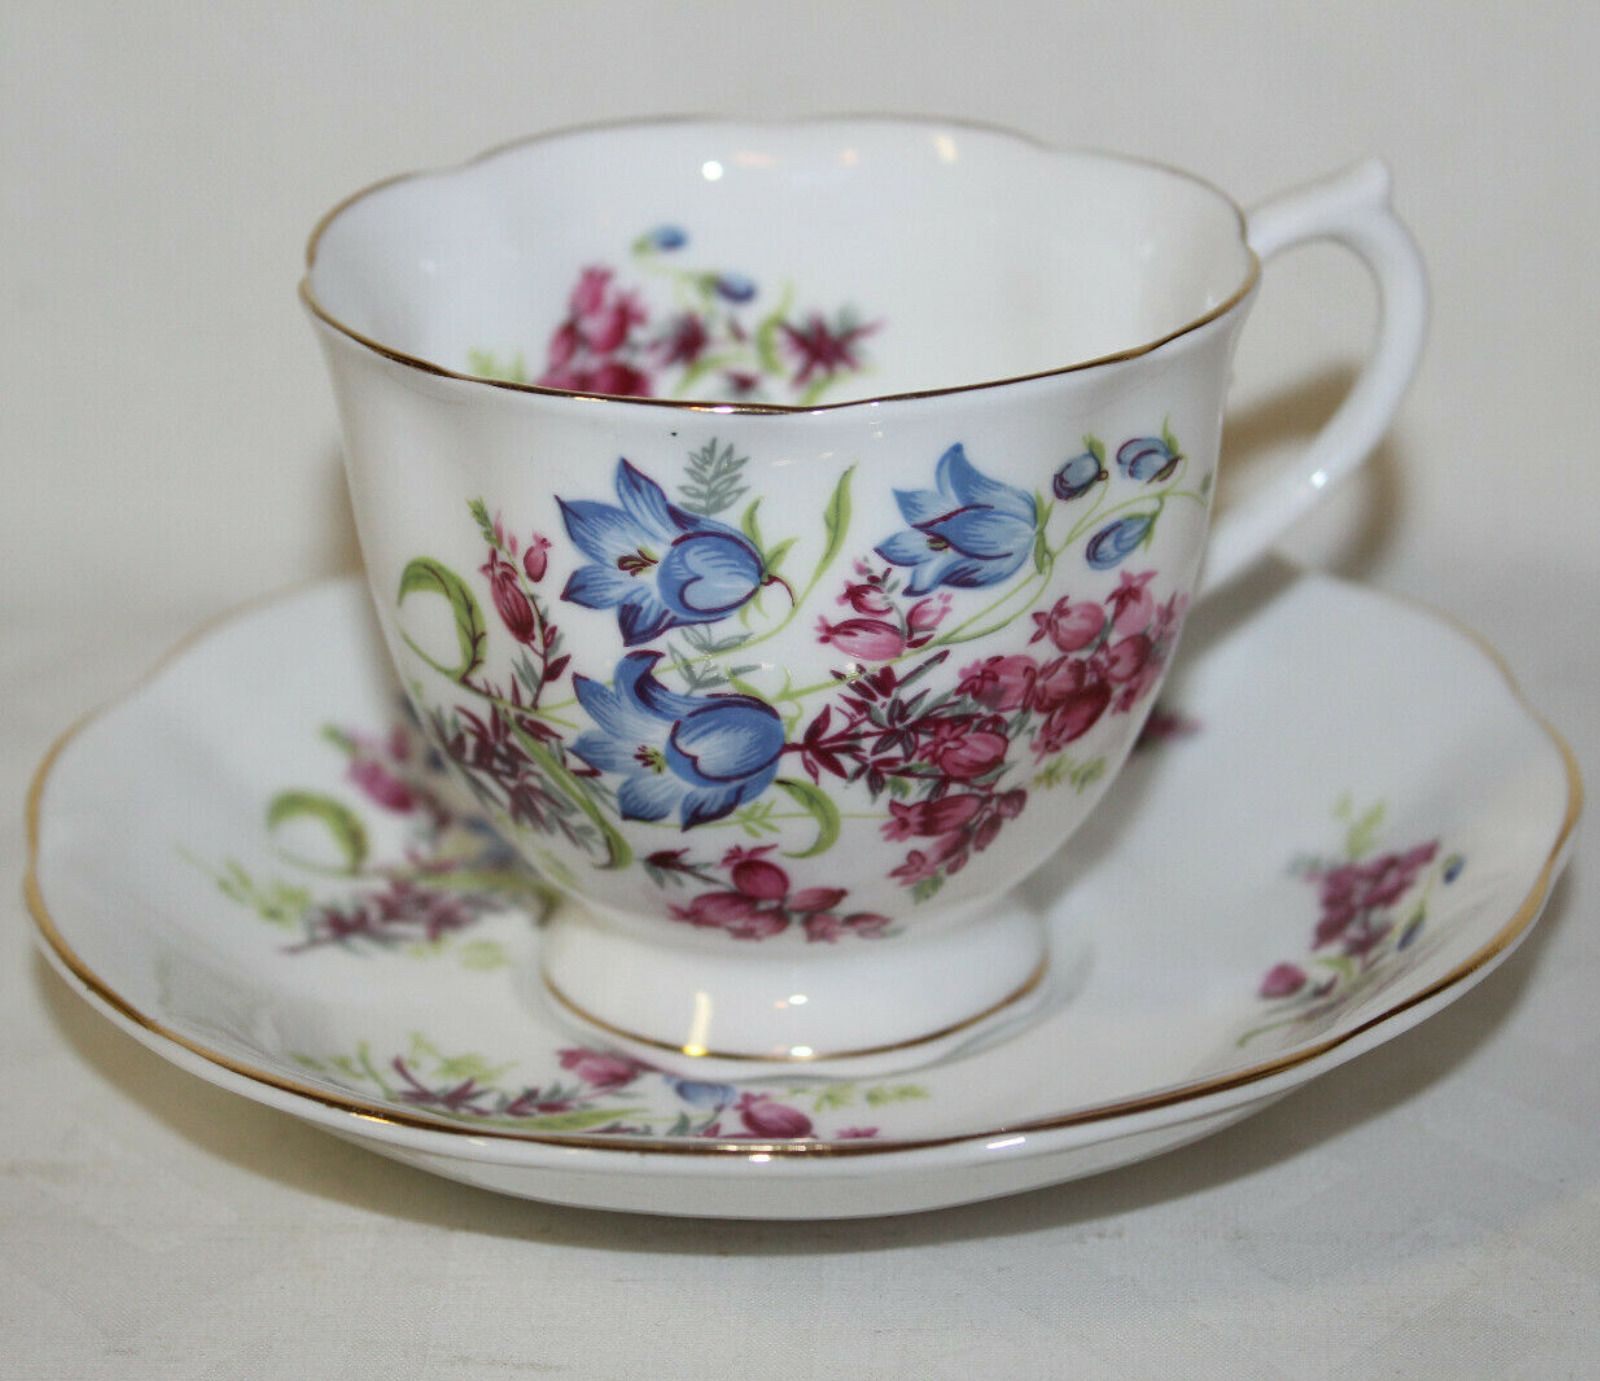 1970s Royal Albert Bone China England Cup & Saucer Royal Albert Bone China England Teacup & Saucer - Blue & Dark Pink Flowers 1970s